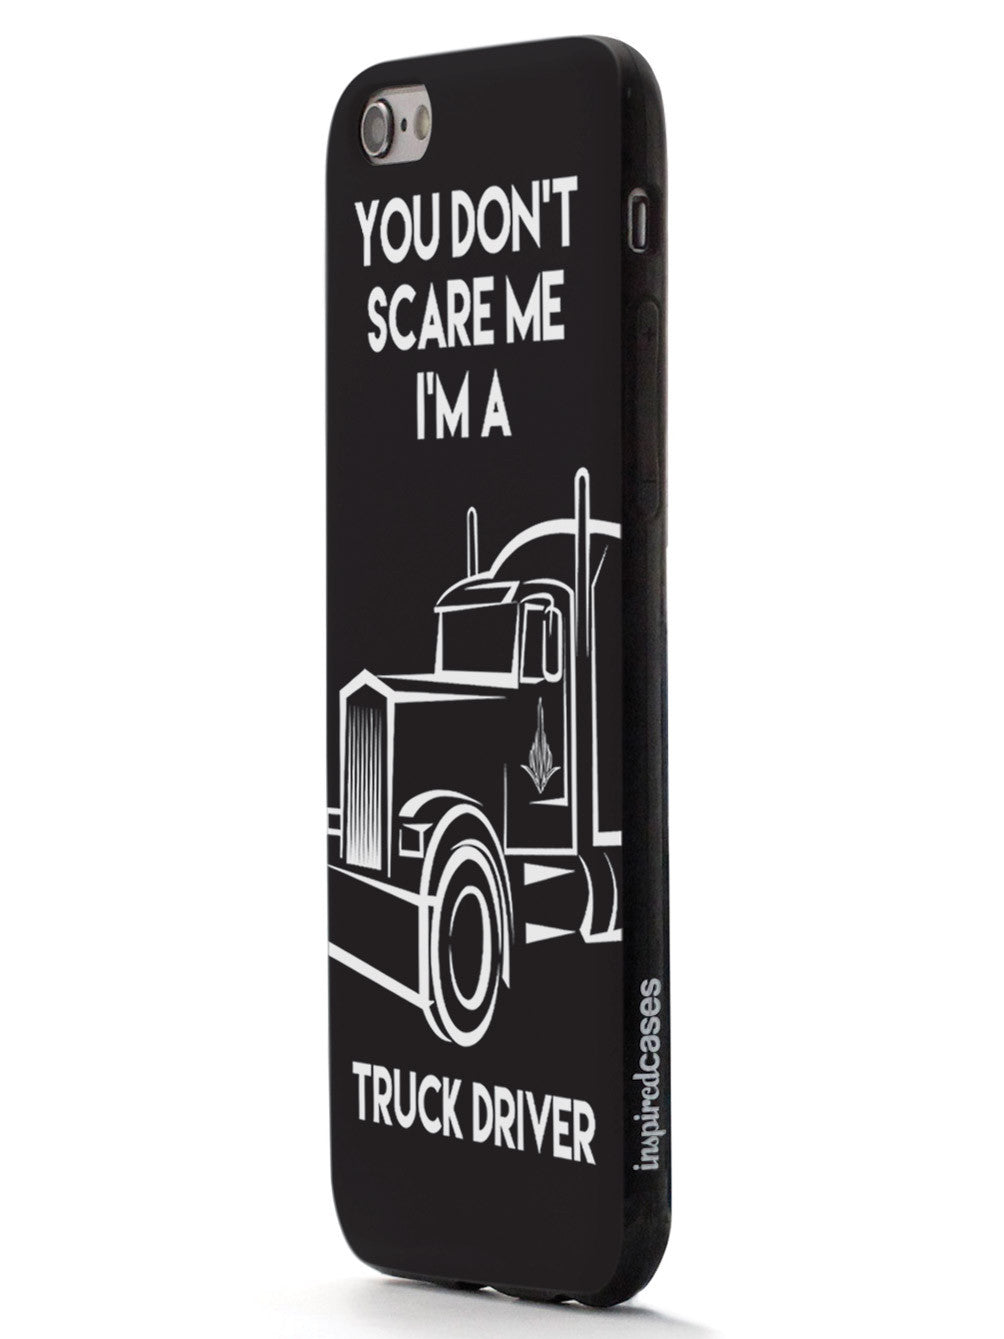 You Don't Scare Me, I'm a Truck Driver Case